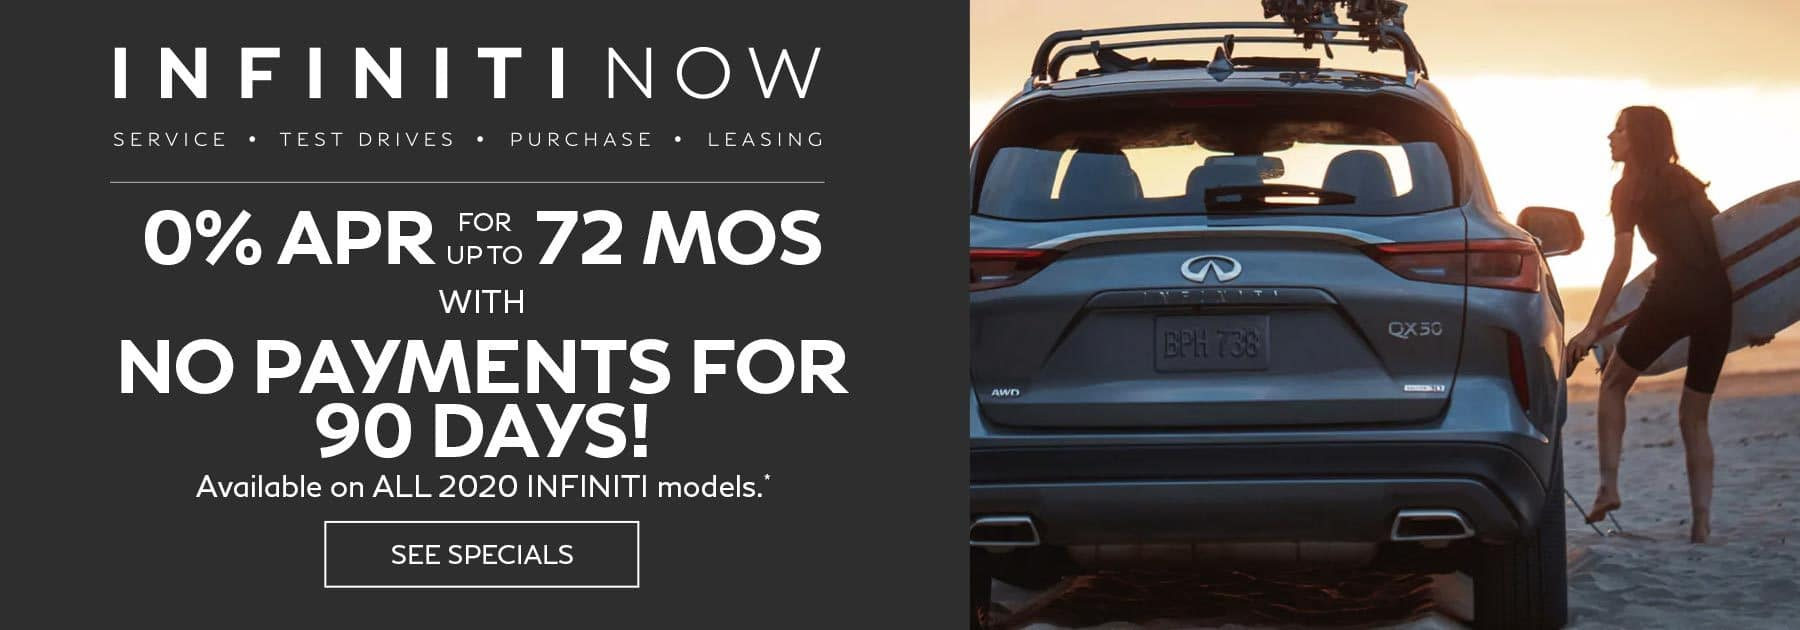 NO PAYMENTS FOR UP TO 90 DAYS ON PURCHASE OR LEASE OF ALL 2020 INFINITI MODELS PLUS 0% APR FOR UP TO 72 MONTHS PURCHASE OFFER